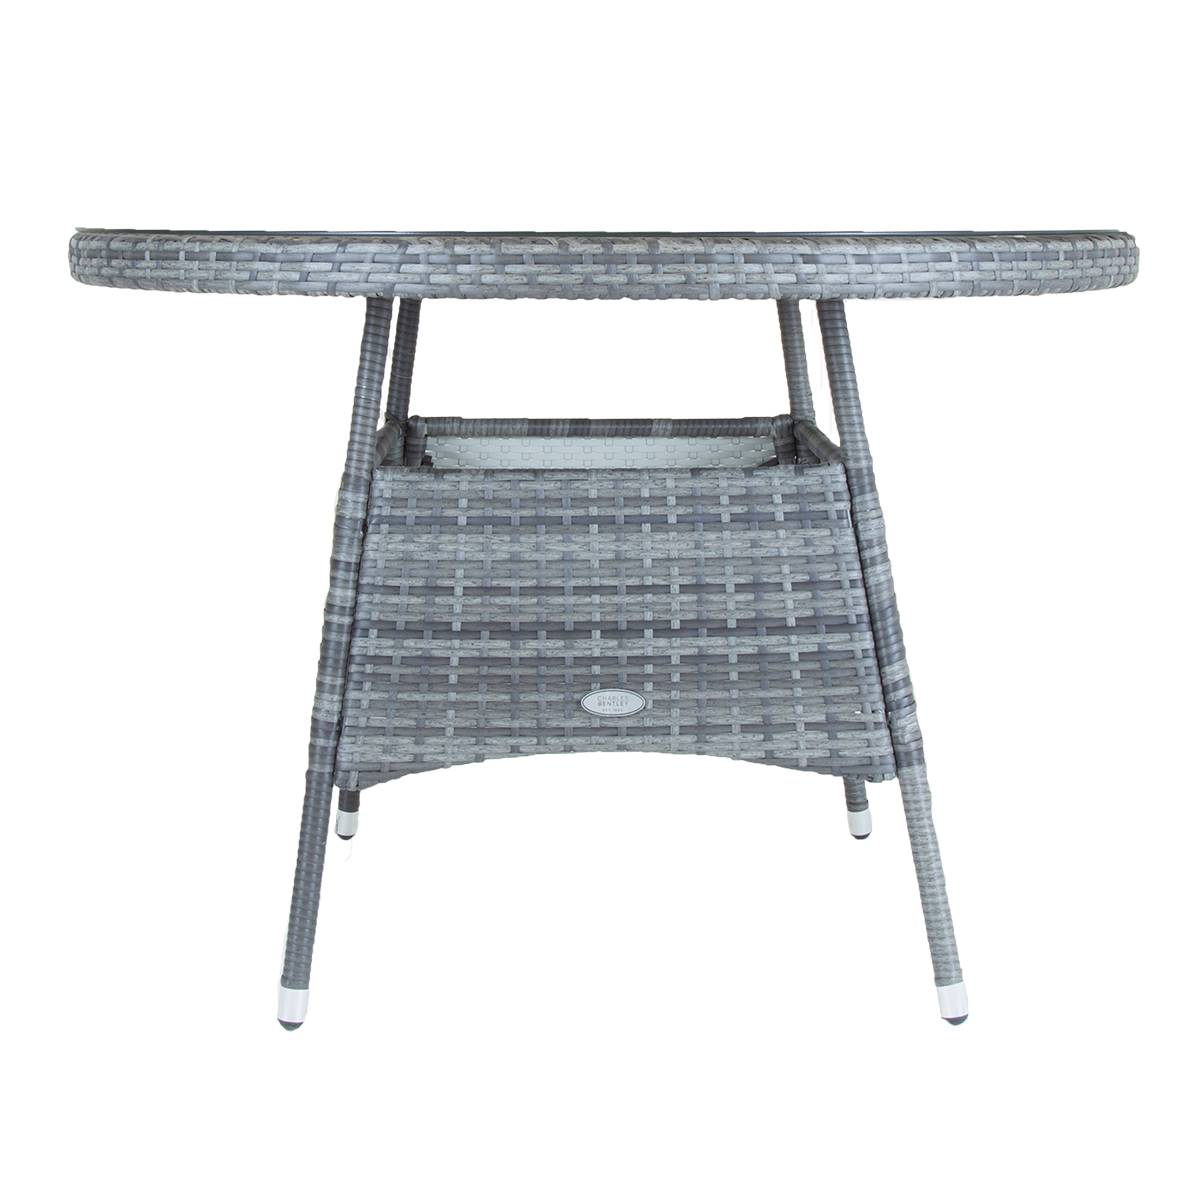 thumbnail 3 - Charles Bentley 4 Seater Round Rattan Dining Table - Grey / Natural